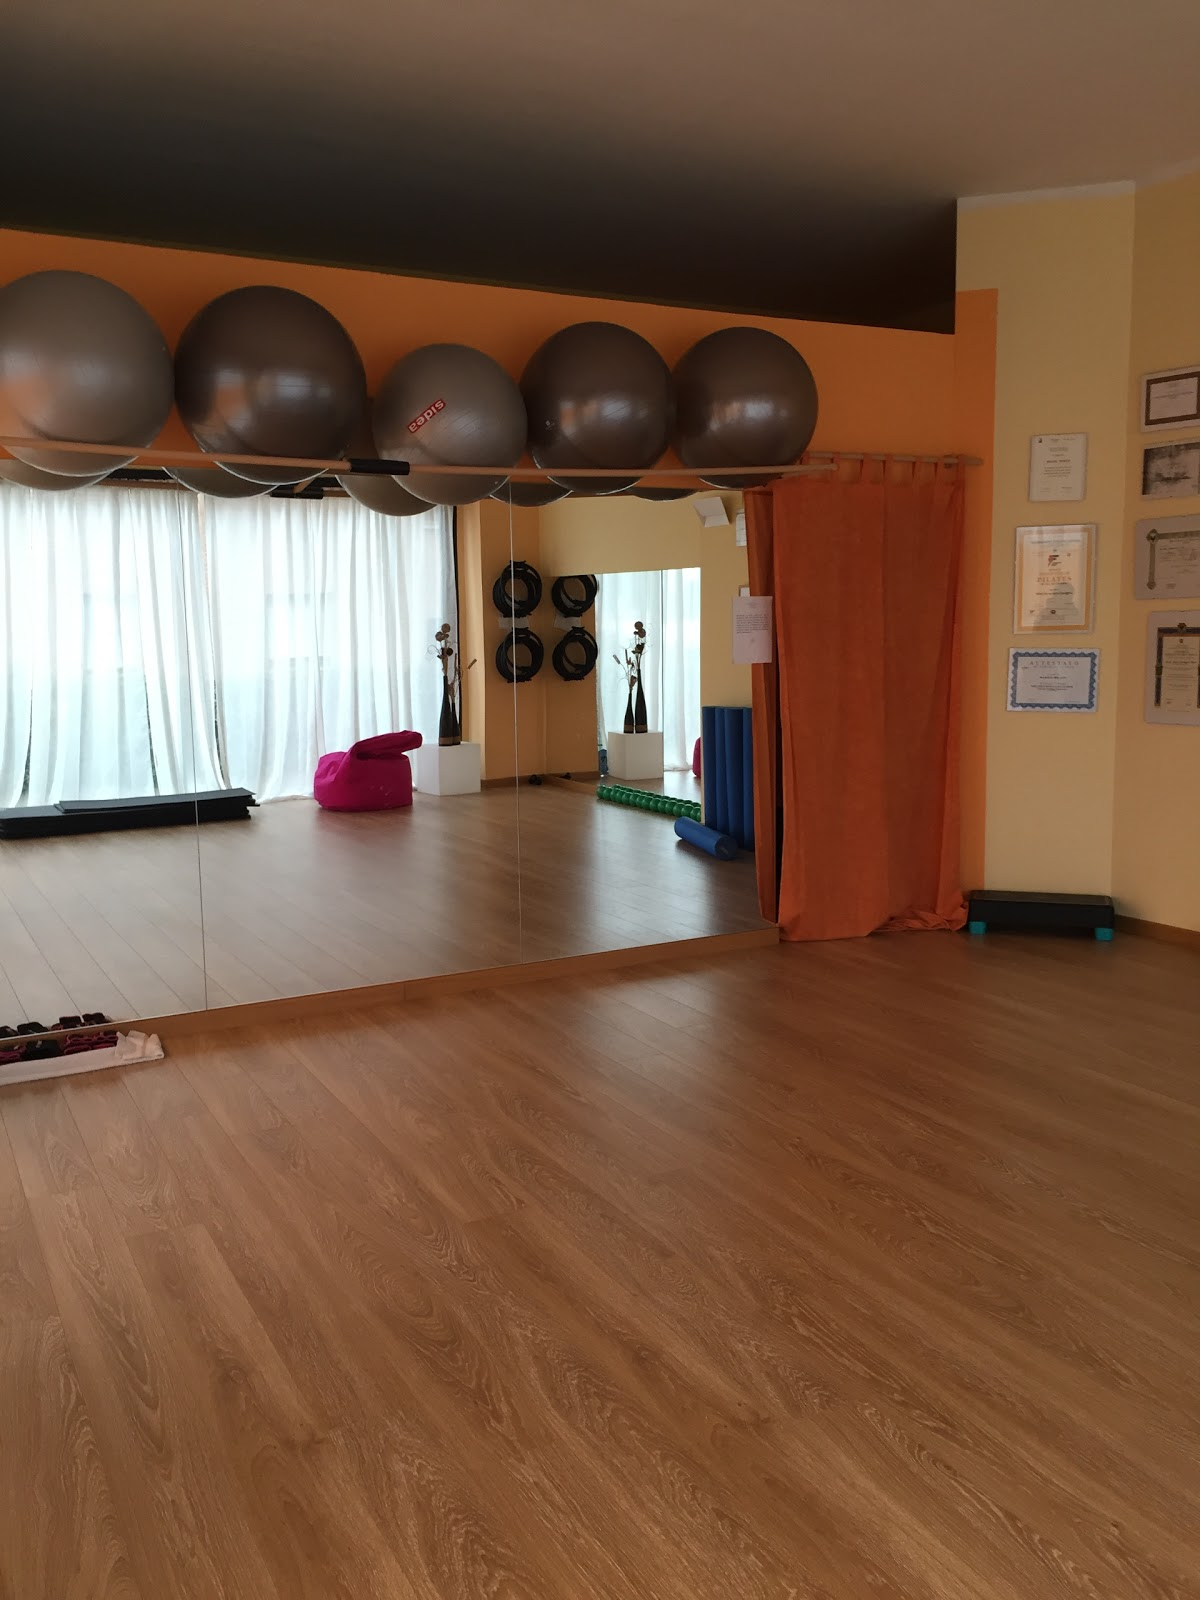 M Pilates Studio L'Aquila - photo